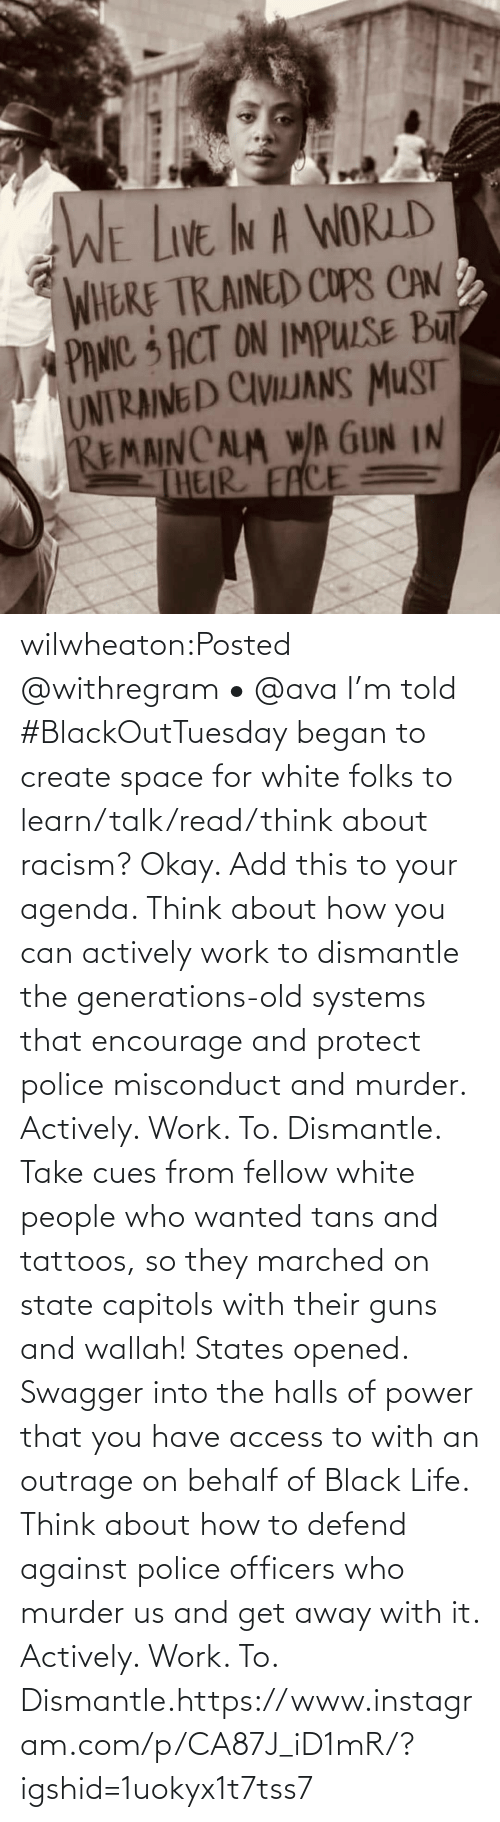 Generations: wilwheaton:Posted @withregram • @ava I'm told #BlackOutTuesday began to create space for white folks to learn/talk/read/think about racism? Okay. Add this to your agenda. Think about how you can actively work to dismantle the generations-old systems that encourage and protect police misconduct and murder. Actively. Work. To. Dismantle. Take cues from fellow white people who wanted tans and tattoos, so they marched on state capitols with their guns and wallah! States opened. Swagger into the halls of power that you have access to with an outrage on behalf of Black Life. Think about how to defend against police officers who murder us and get away with it. Actively. Work. To. Dismantle.https://www.instagram.com/p/CA87J_iD1mR/?igshid=1uokyx1t7tss7